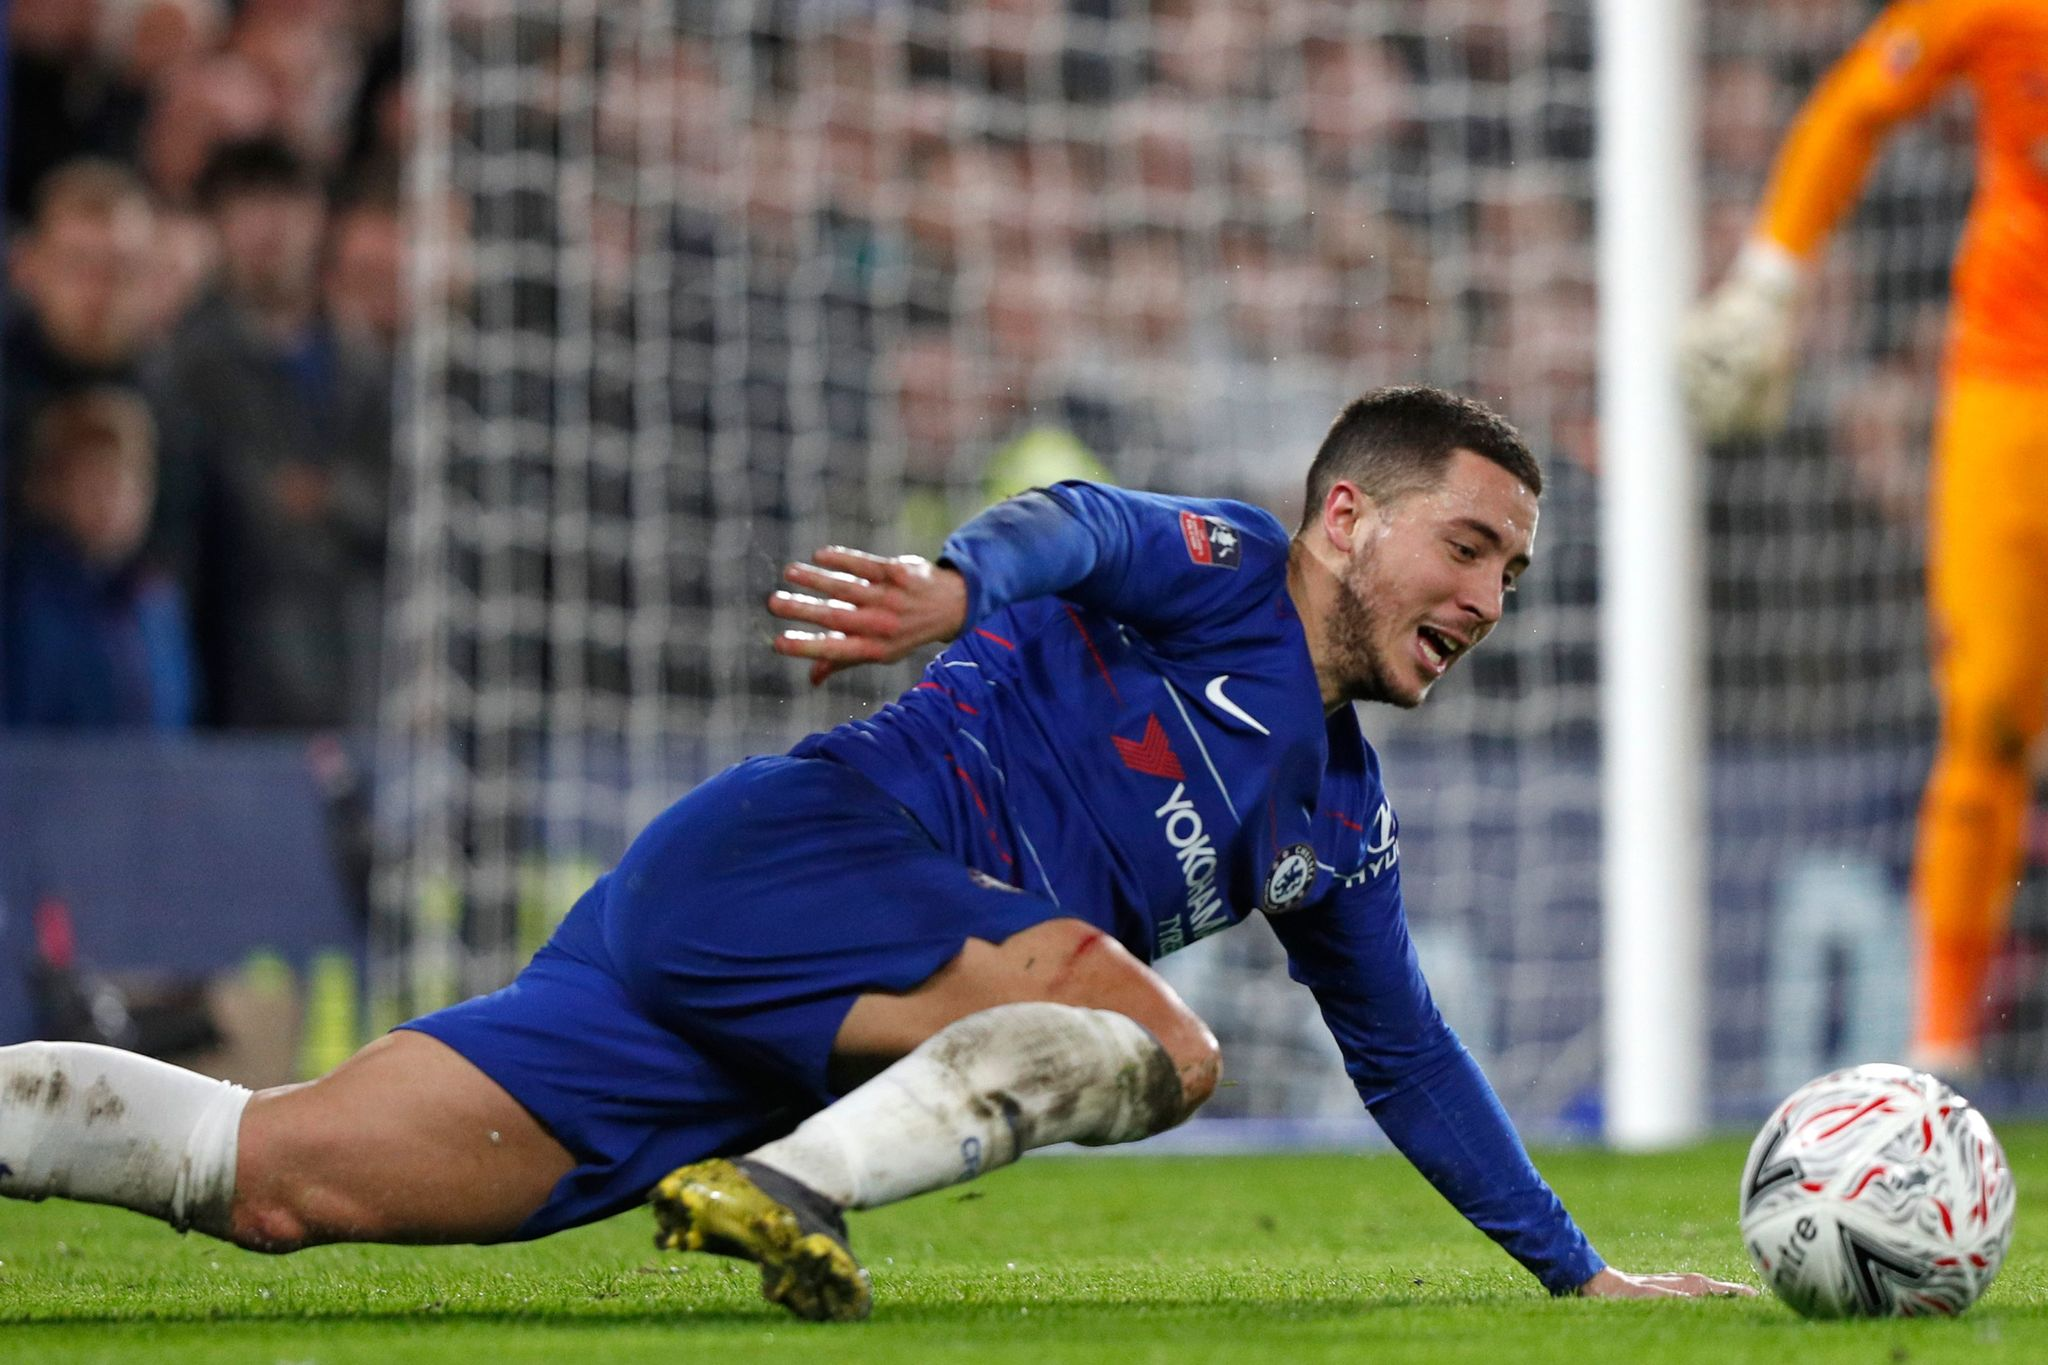 <HIT>Chelsea</HIT>s Belgian midfielder Eden Hazard falls to the ground during the English FA Cup fifth round football match between <HIT>Chelsea</HIT> and Manchester United at Stamford Bridge in London on February 18, 2019. (Photo by Adrian DENNIS / AFP) / RESTRICTED TO EDITORIAL USE. No use with unauthorized audio, video, data, fixture lists, club/league logos or live services. Online in-match use limited to 120 images. An additional 40 images may be used in extra time. No video emulation. Social media in-match use limited to 120 images. An additional 40 images may be used in extra time. No use in betting publications, games or single club/league/player publications. /